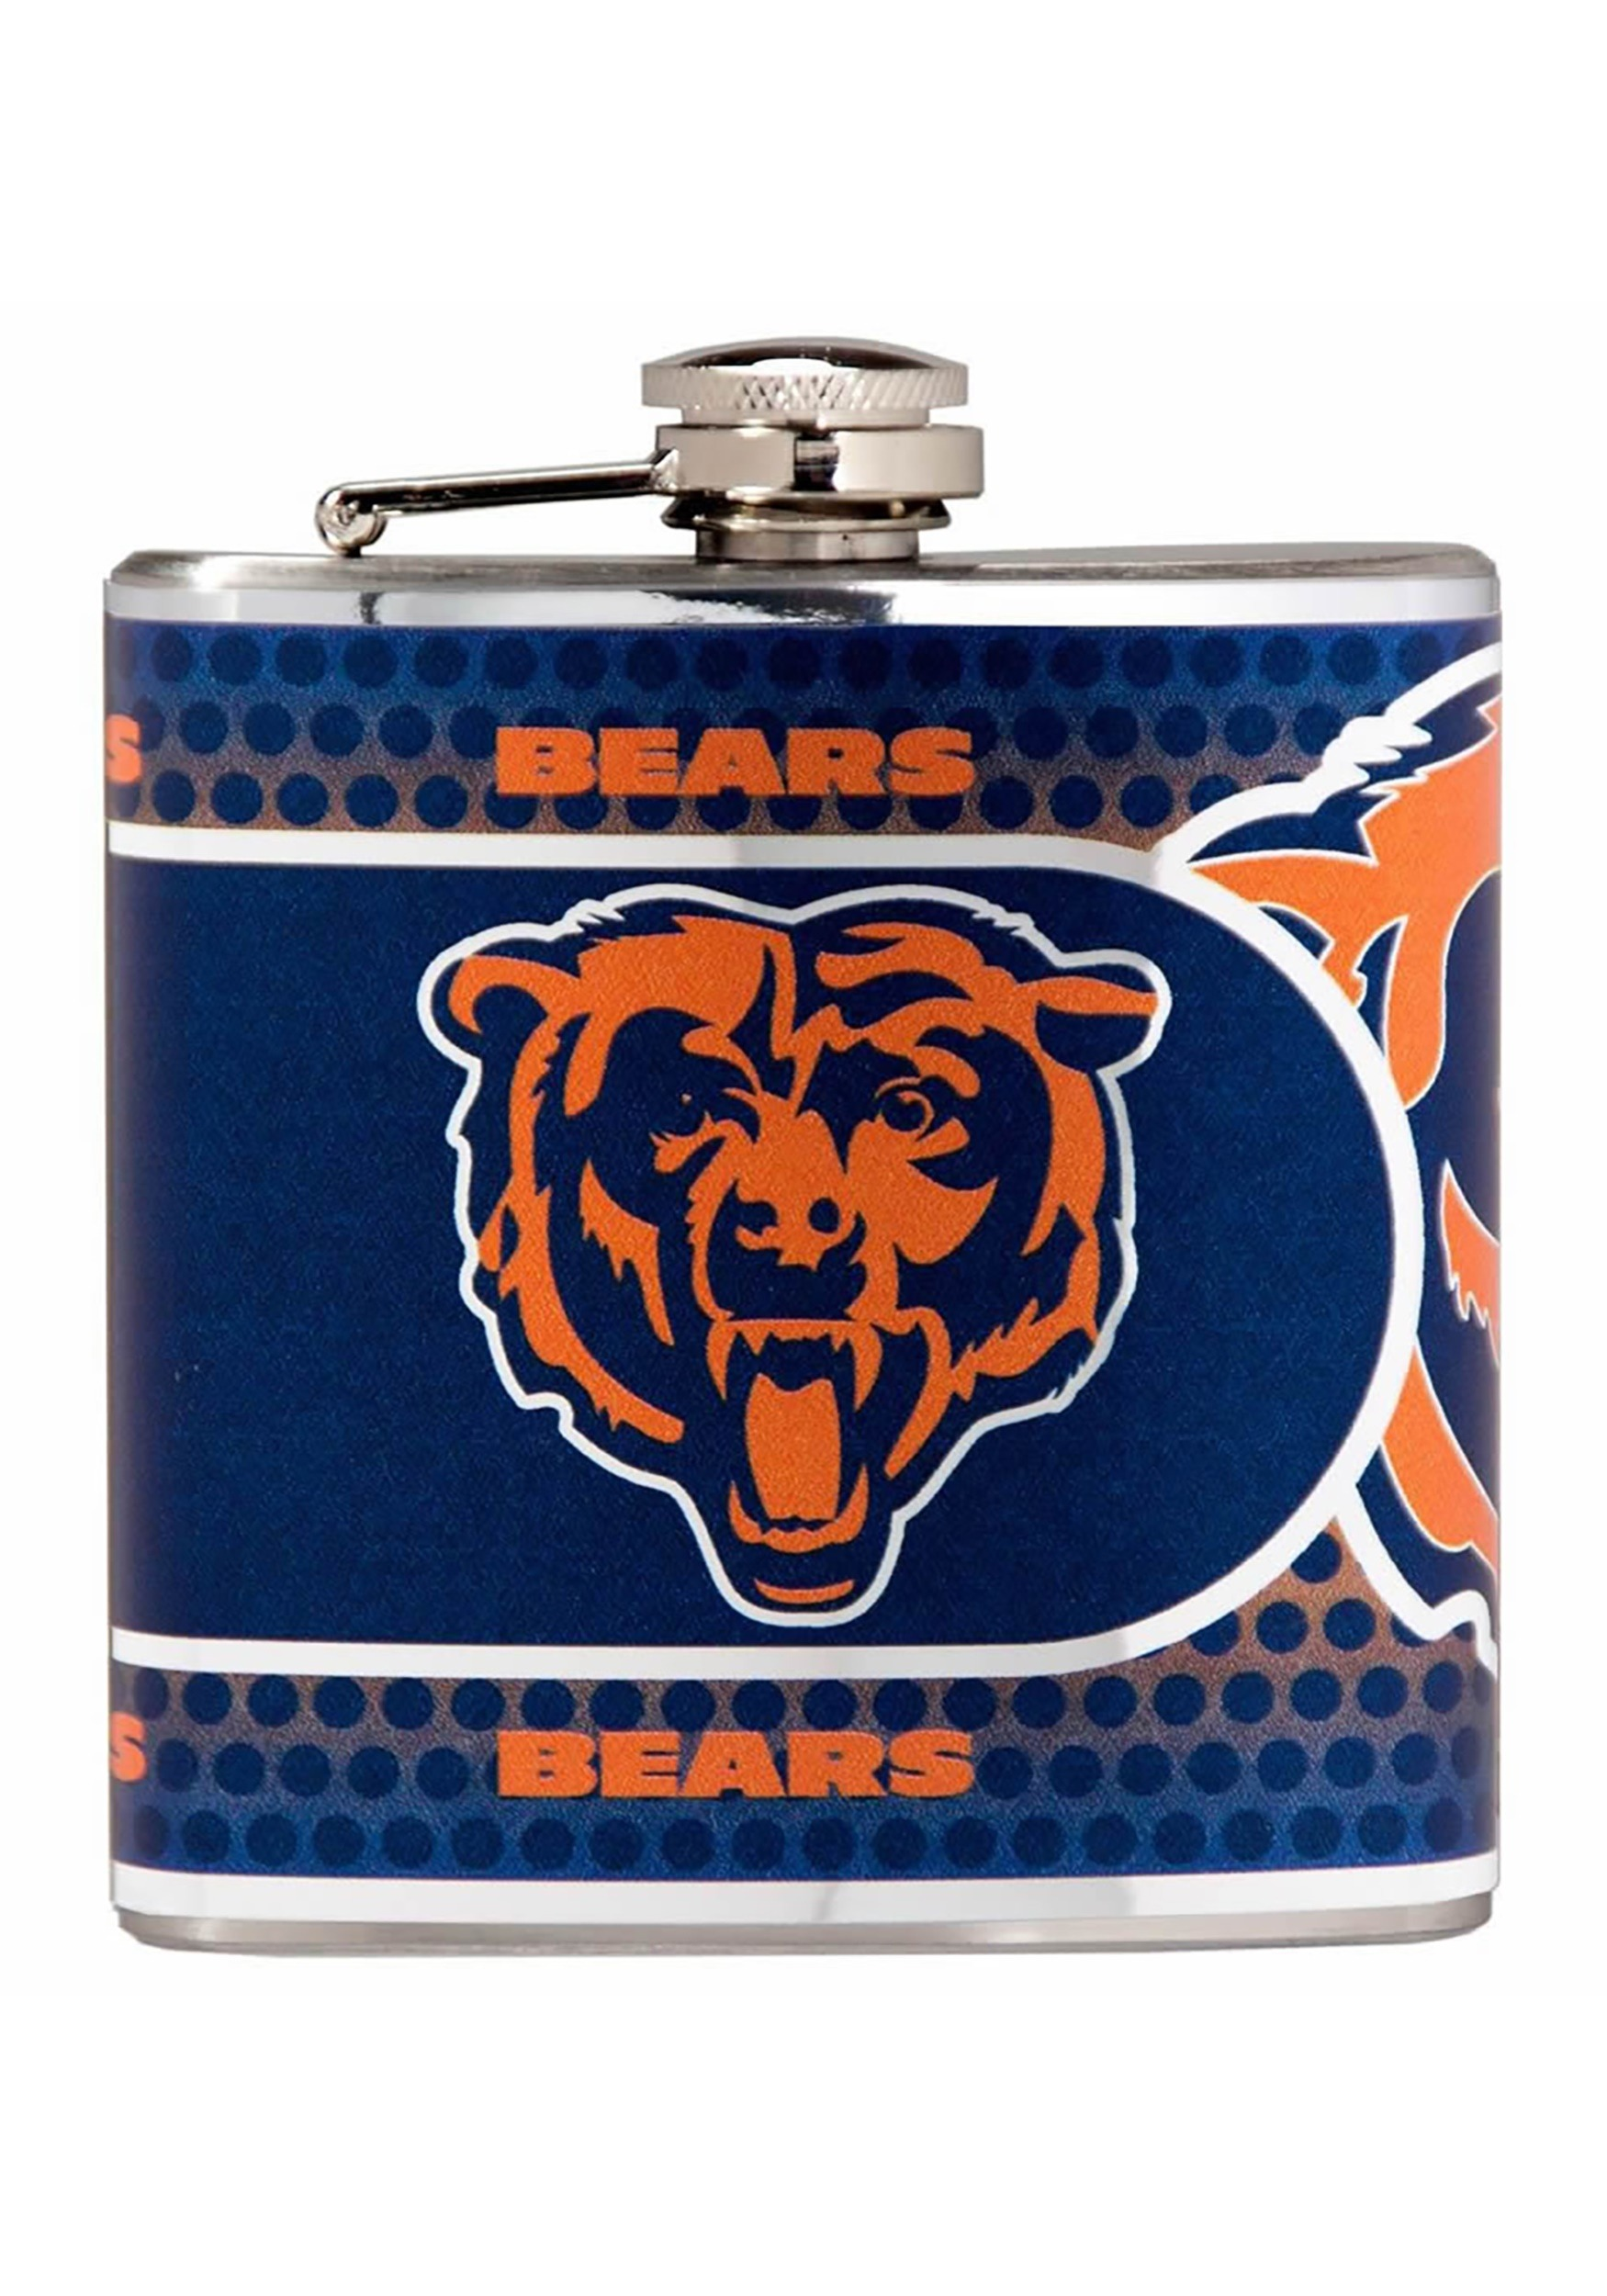 Chicago Bears NFL 6 oz. Stainless Steel Flask w/ Metallic Graphics